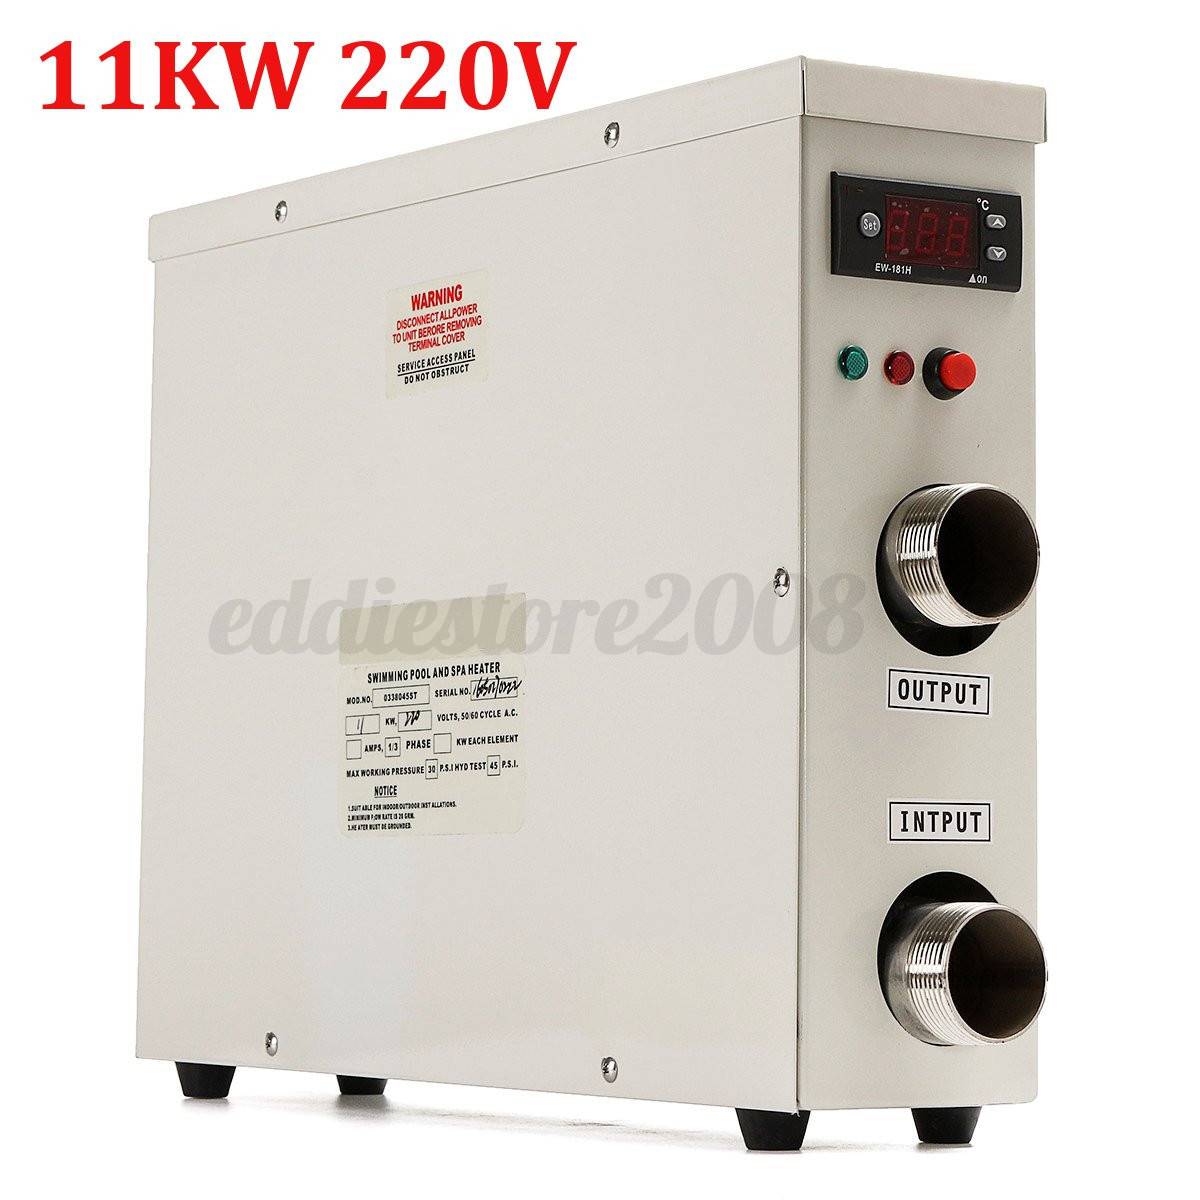 11kw 220v Electric Hot Water Heater Thermostat For